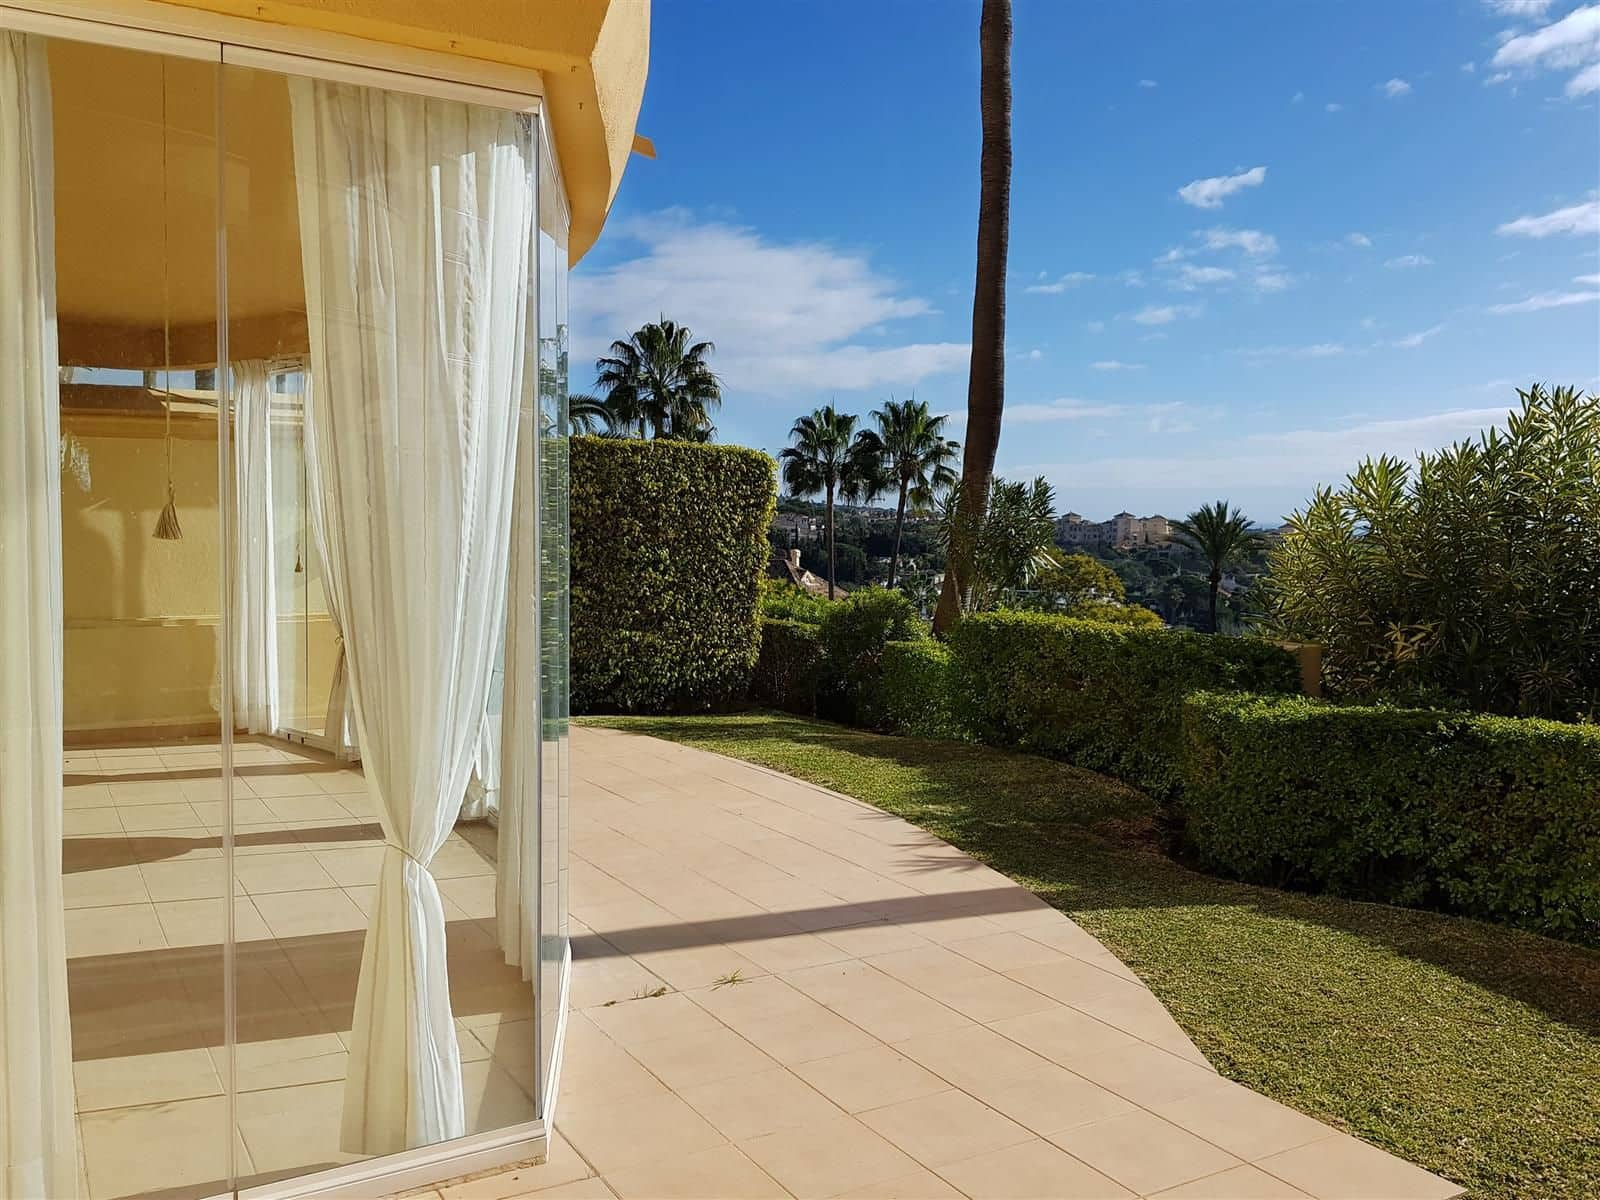 2 bedroom Apartment for sale in Marbella with pool garage - € 350,000 (Ref: 5130354)